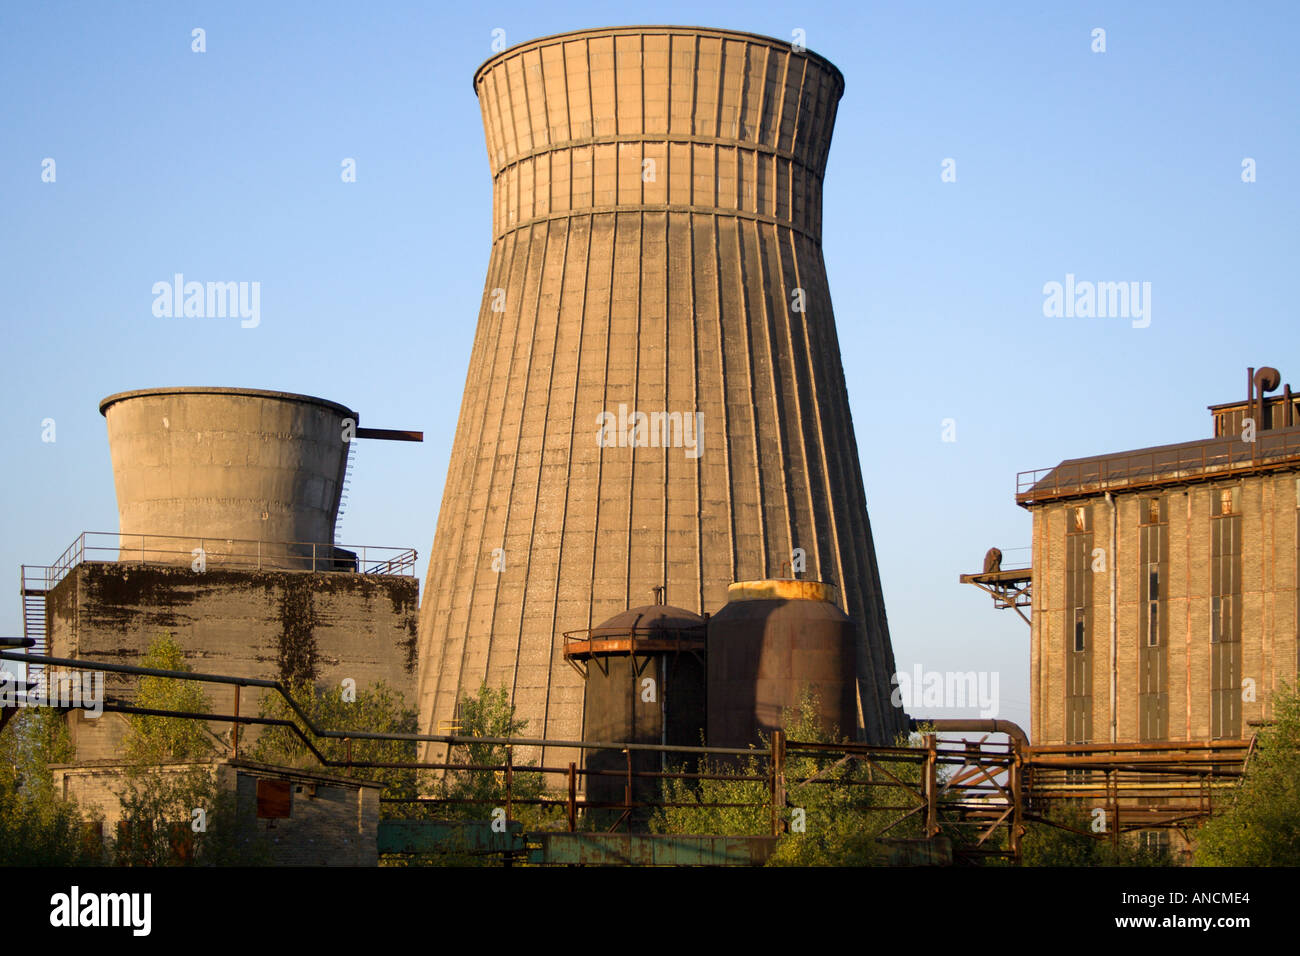 Industrial Cooling Towers : Industrial cooling tower chimney and buildings in